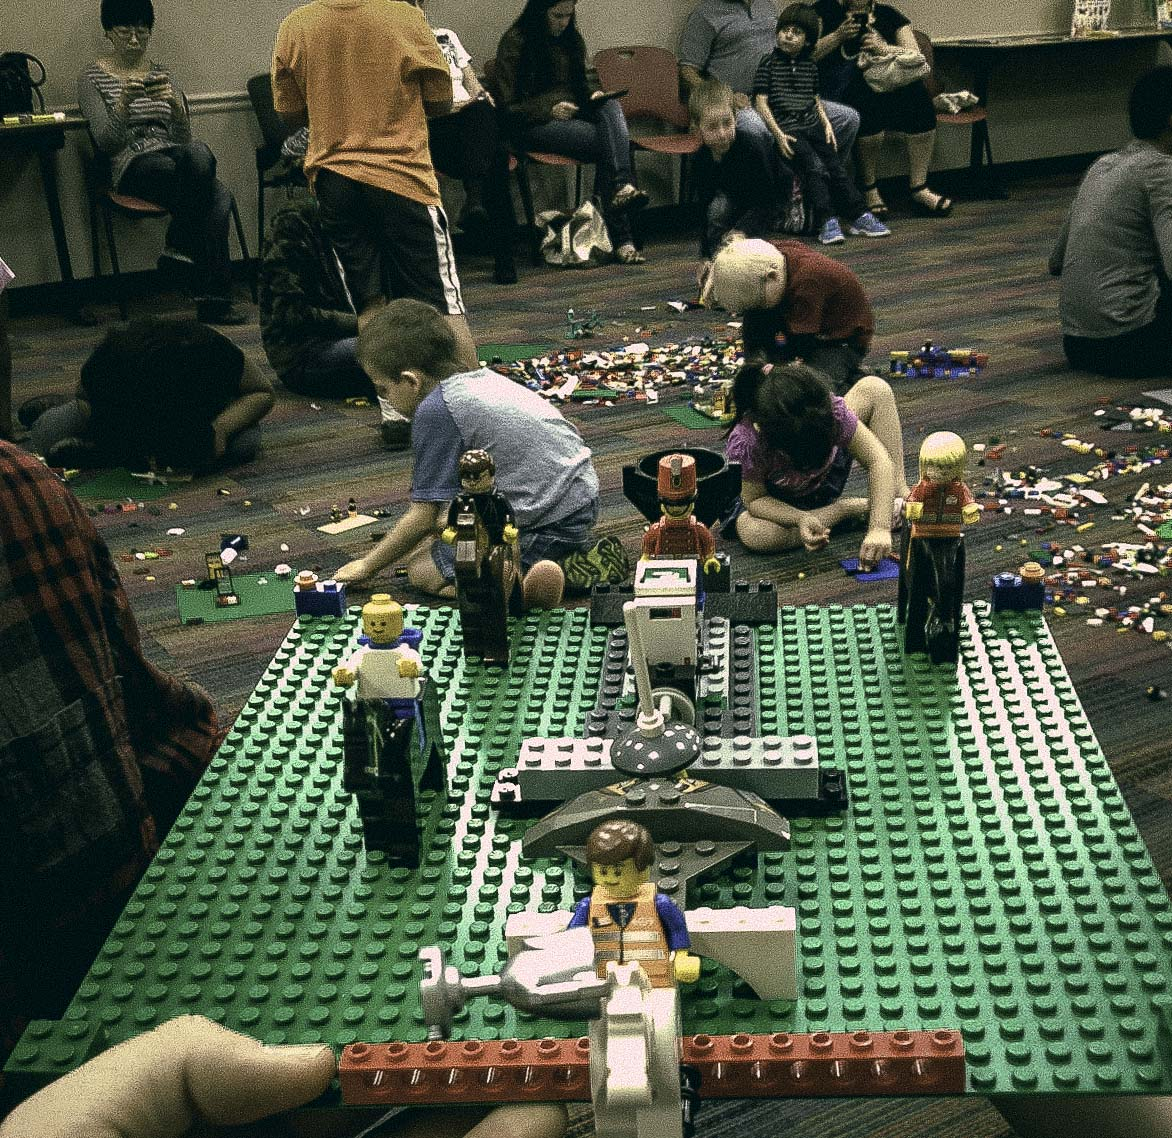 We checked out the Lego Builder's Club at Emily Fowler Library last Friday and had a great time. Their next meeting is next Friday, March 21st at 4:30pm. Take your 6 - 11 year old and watch 'em build.